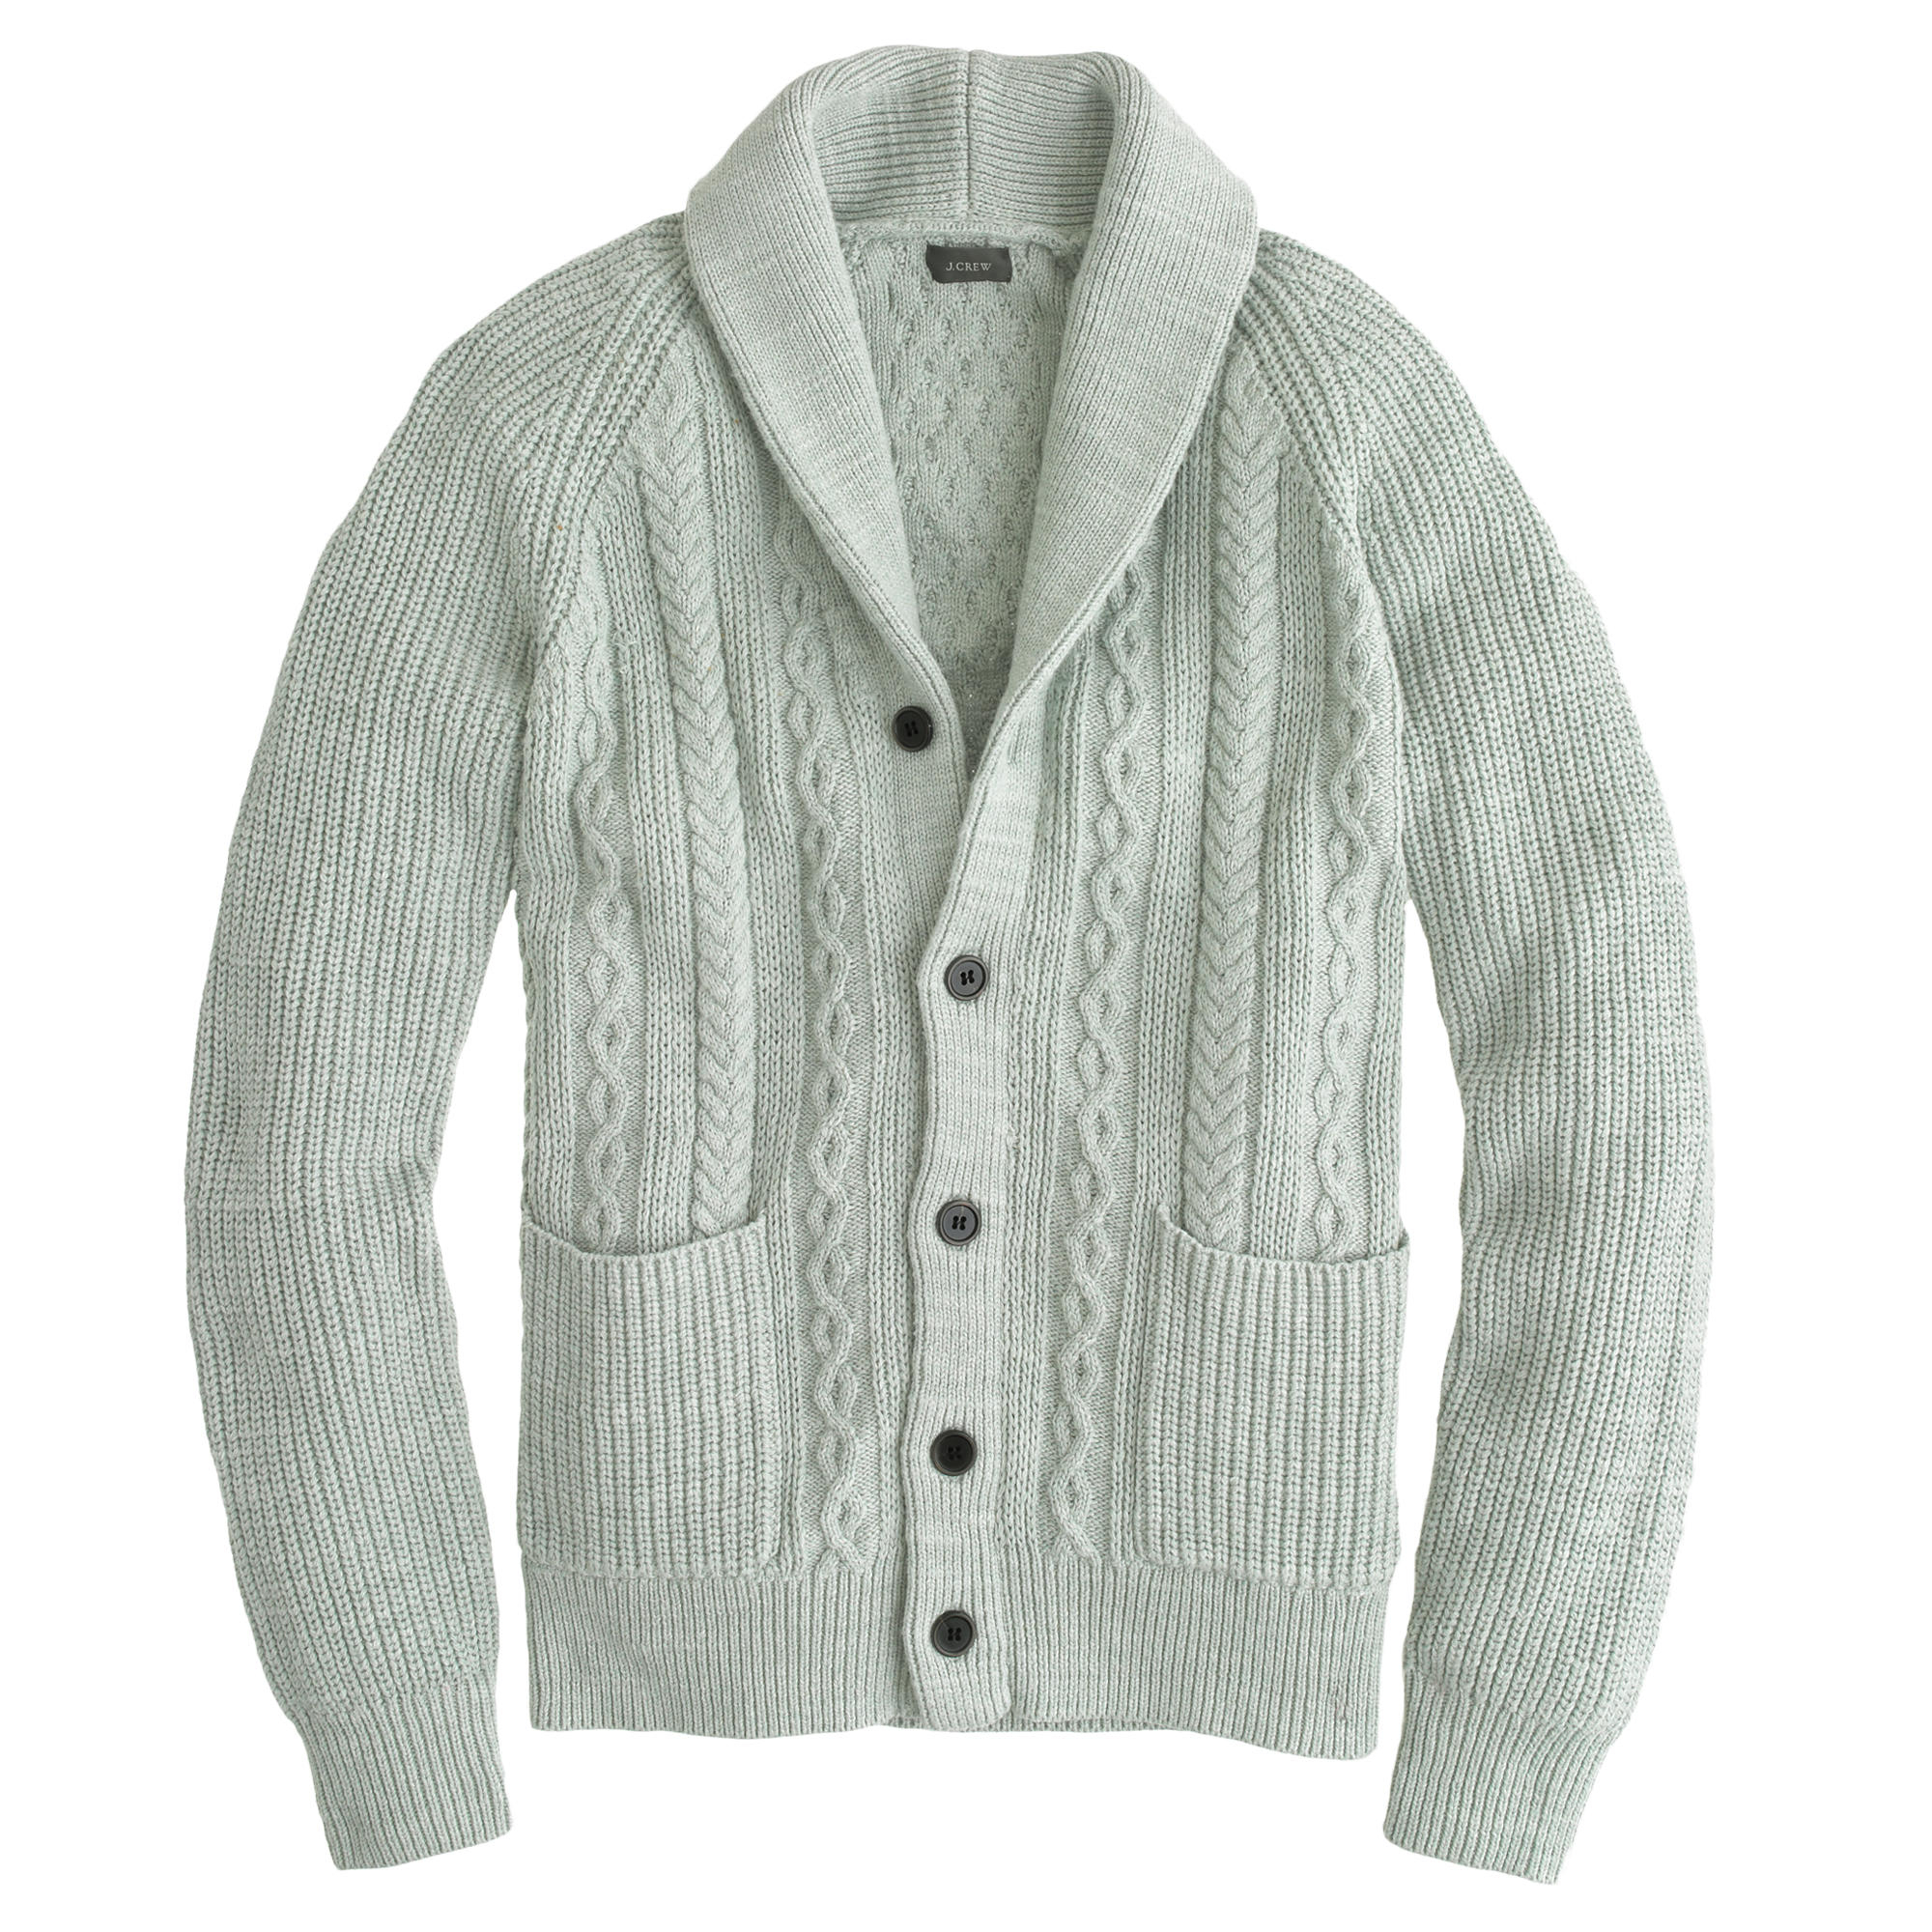 J.crew Textured Cotton Shawl-collar Cardigan Sweater in Gray for ...